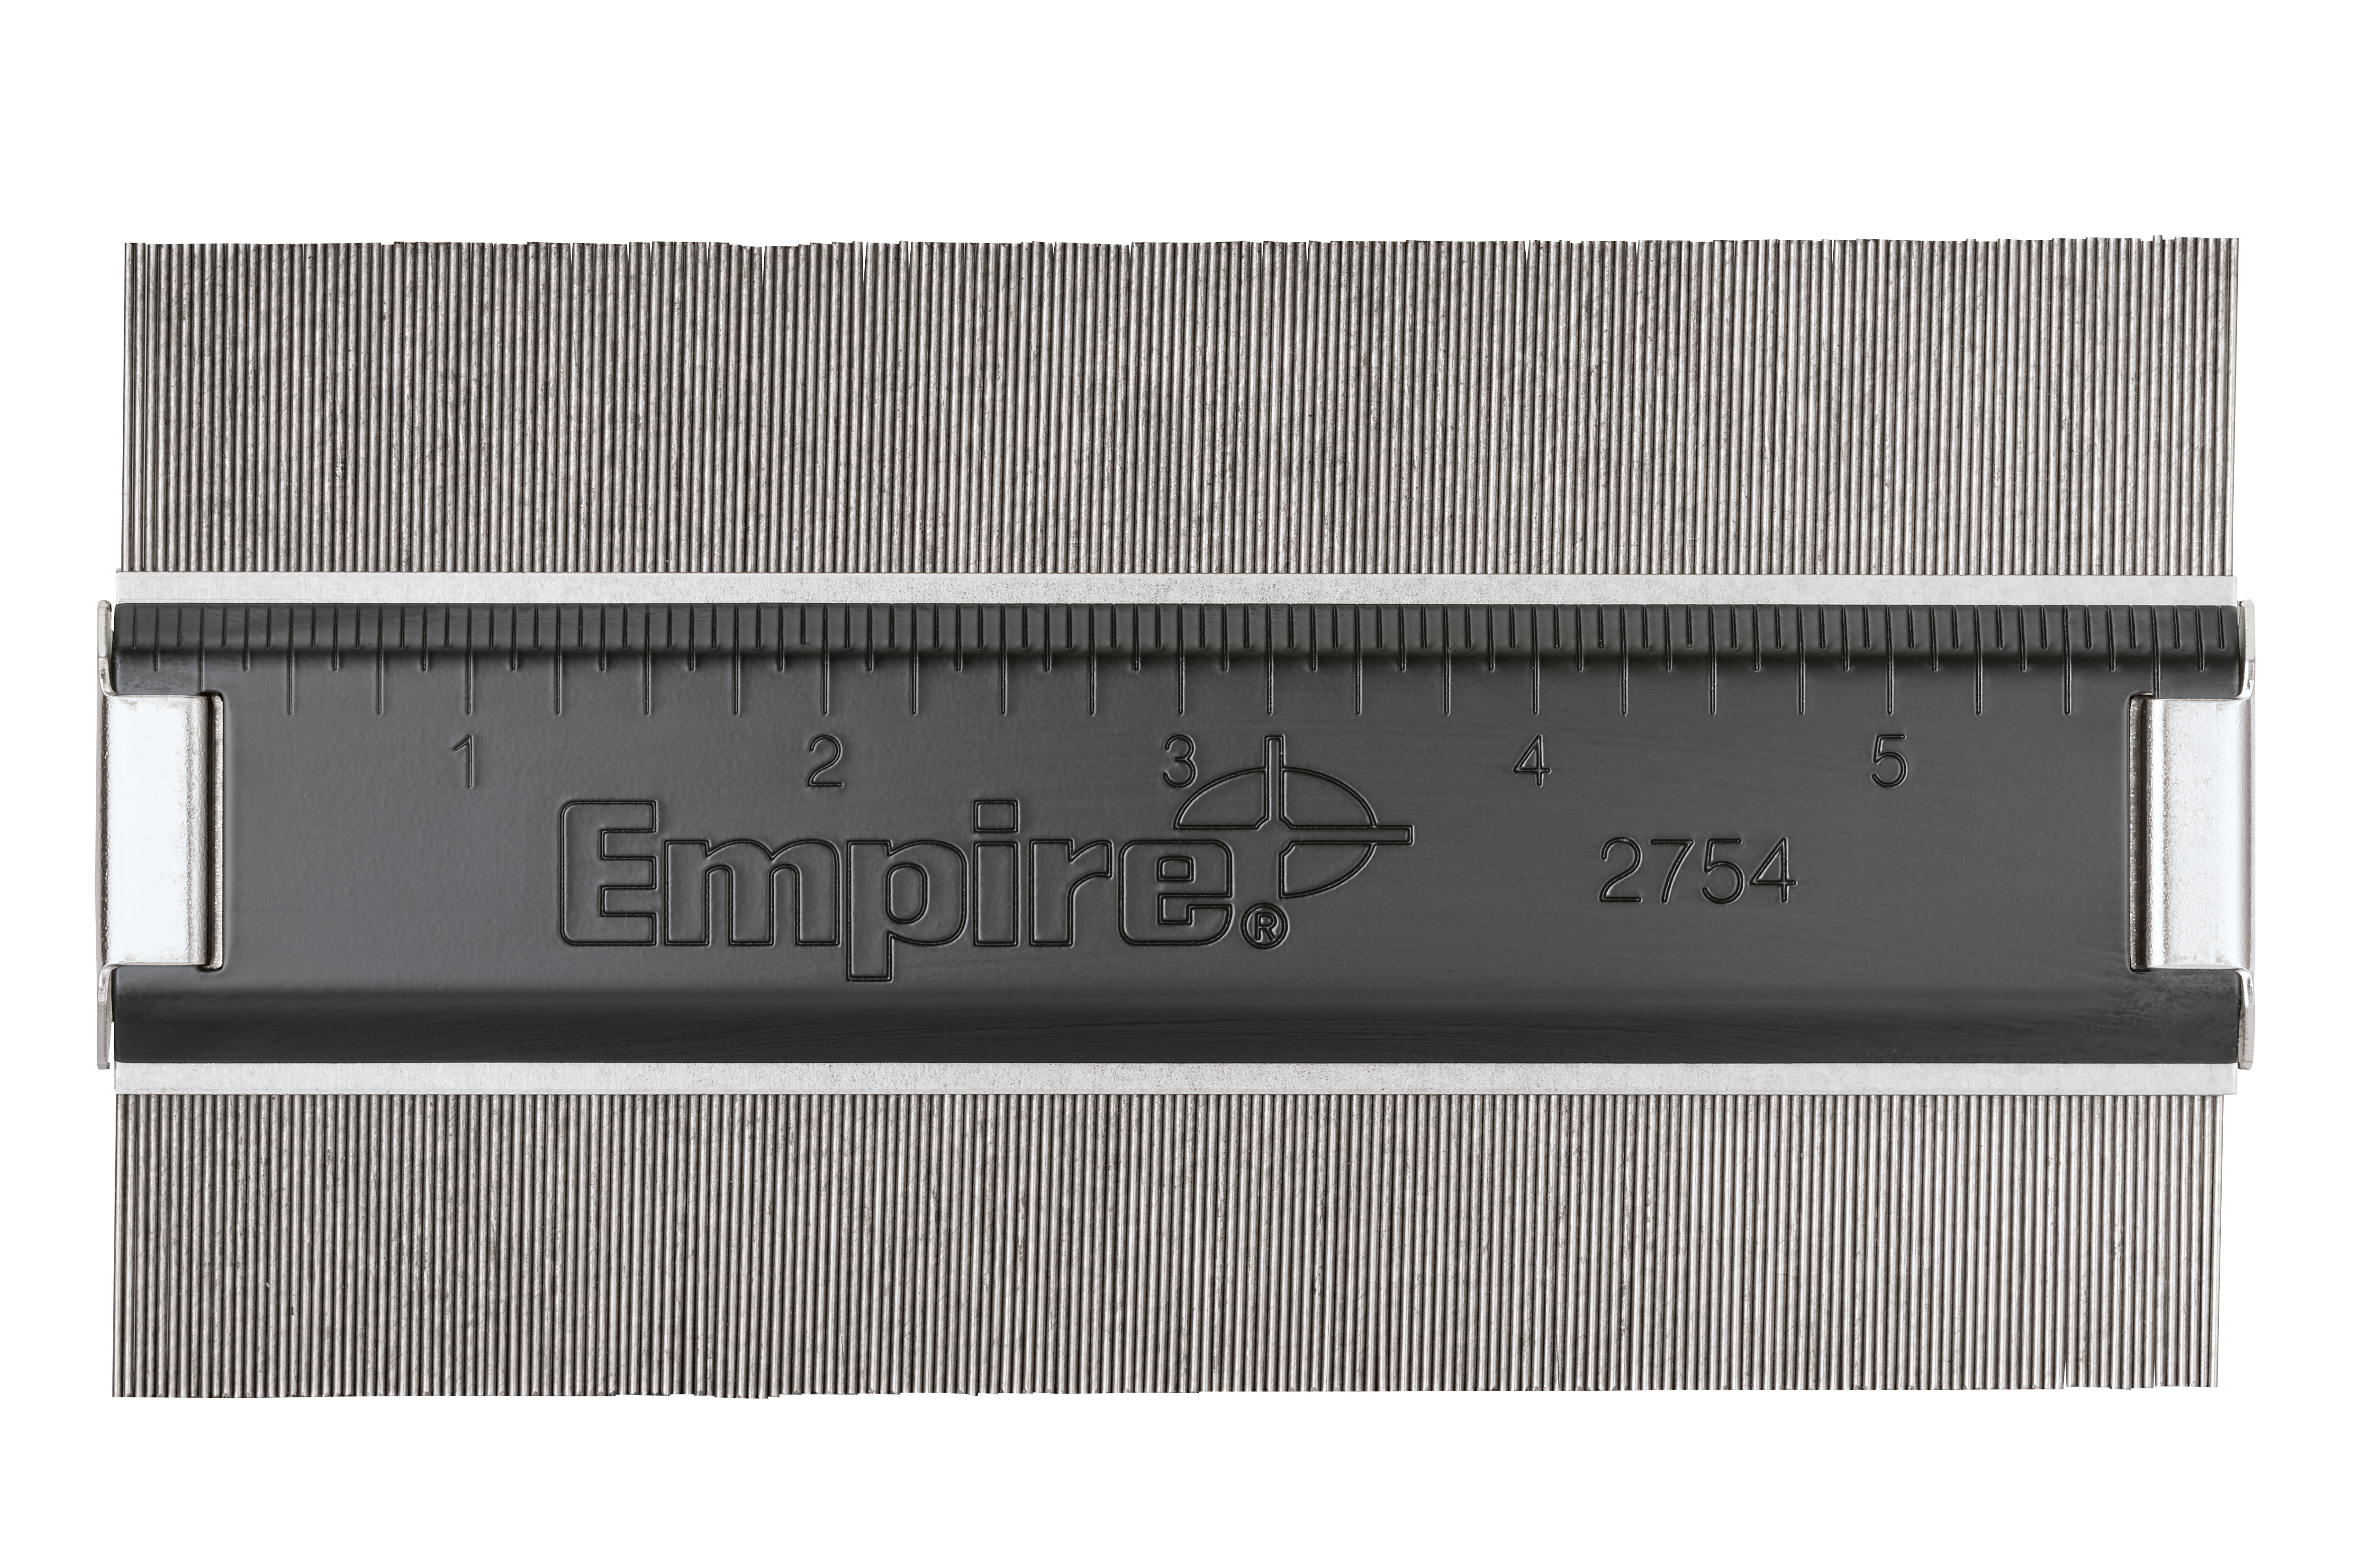 Milwaukee® Empire® 2754 Low Profile Contour Gauge, 6 in L x 1-7/8 in D, Stainless Steel, Enamel and Brass